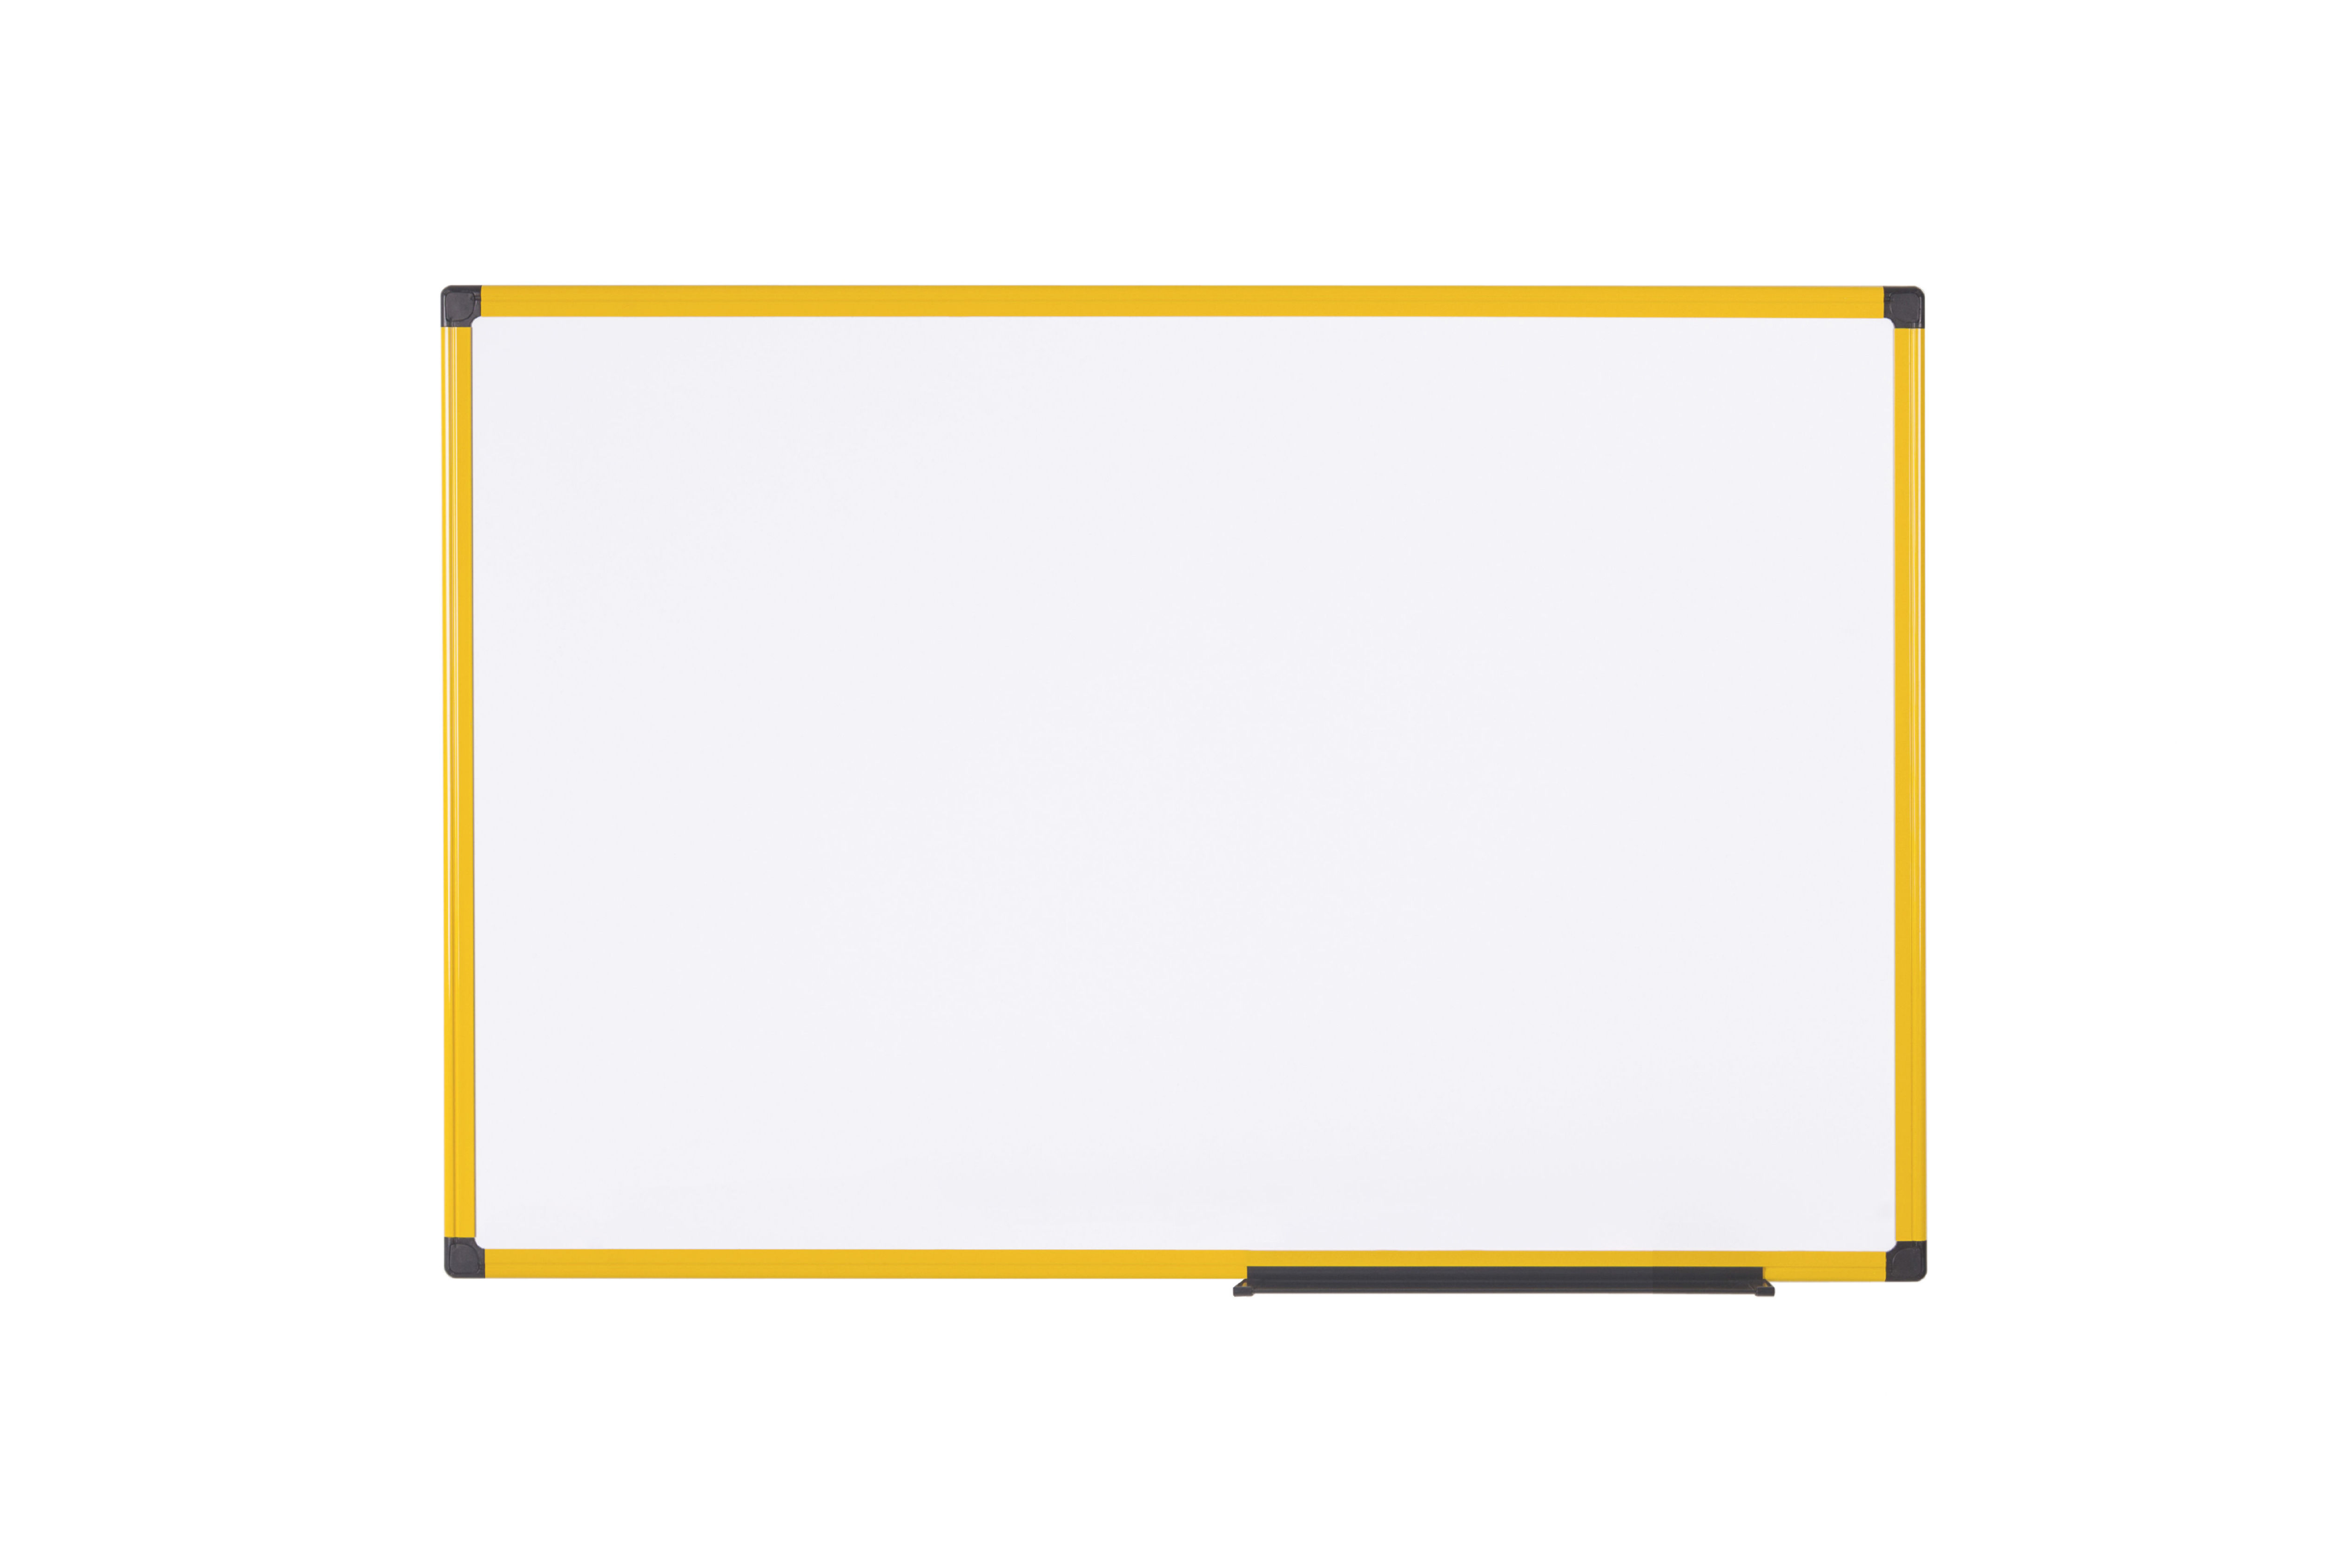 Magnetic Bi-Office Ultrabrite Magnetic Lacquered Steel Whiteboard Yellow Aluminium Frame 900x600mm MA0315177